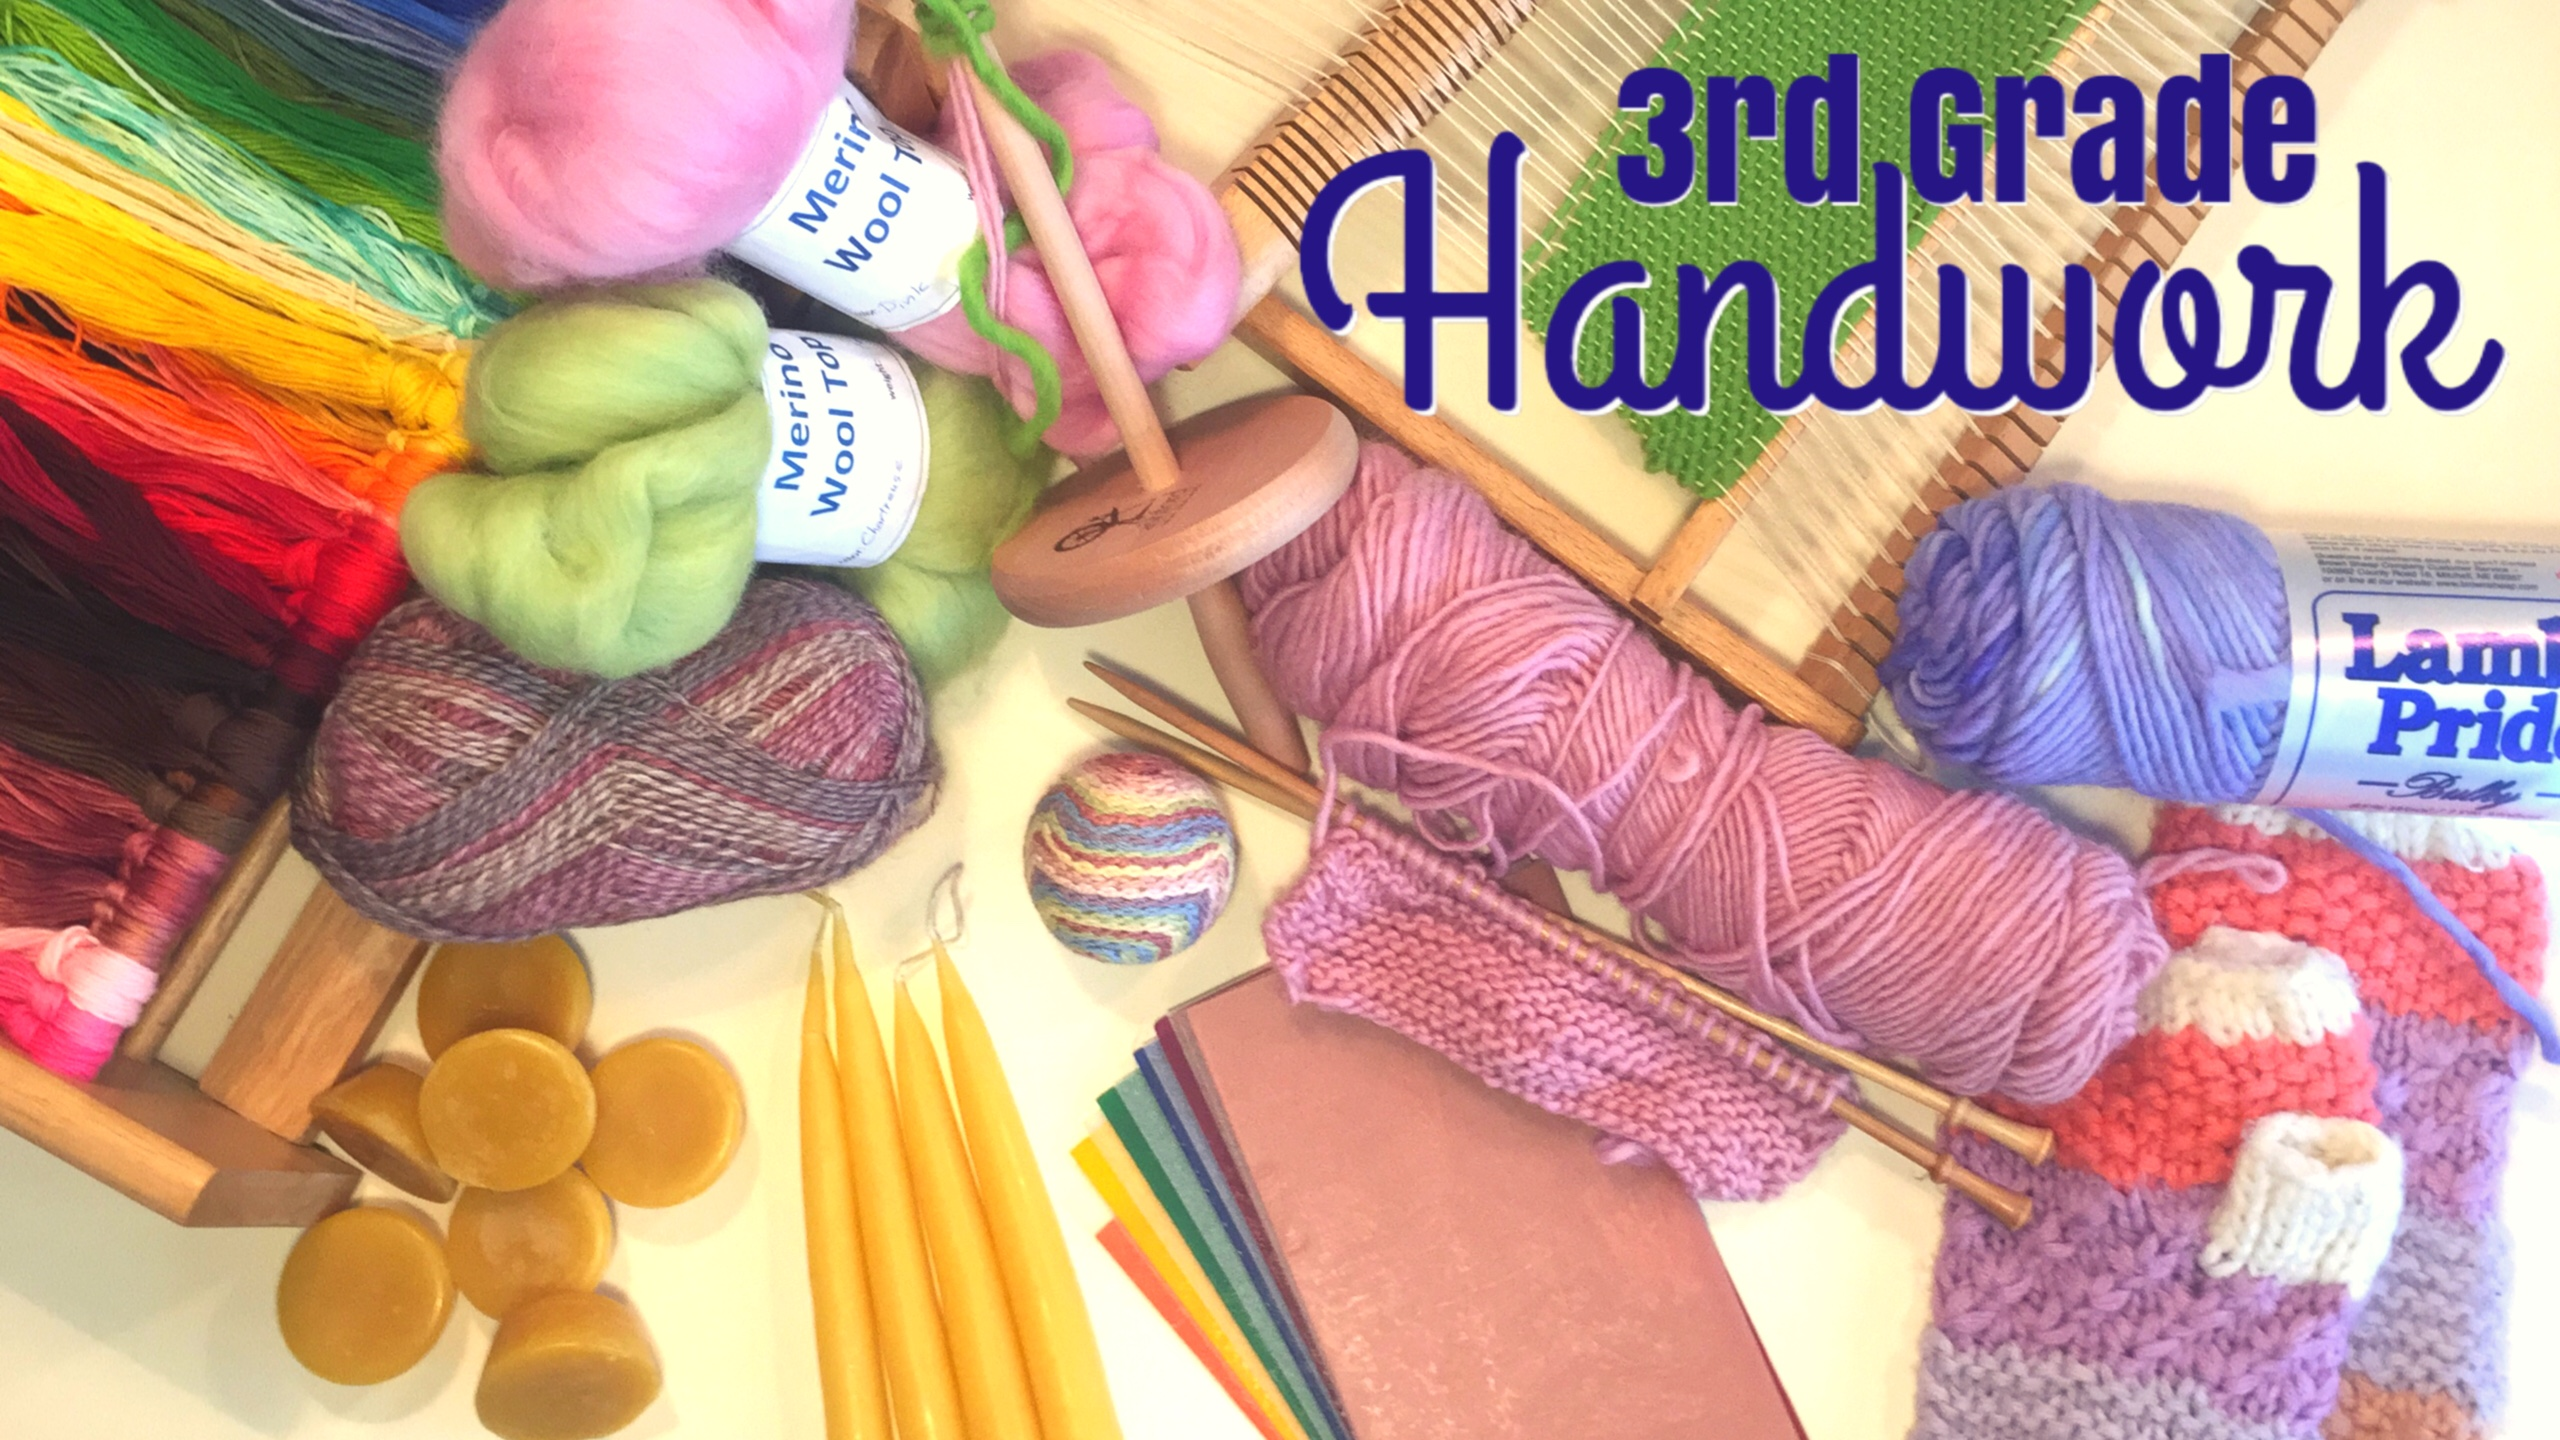 HANDWORK FOR THIRD GRADE